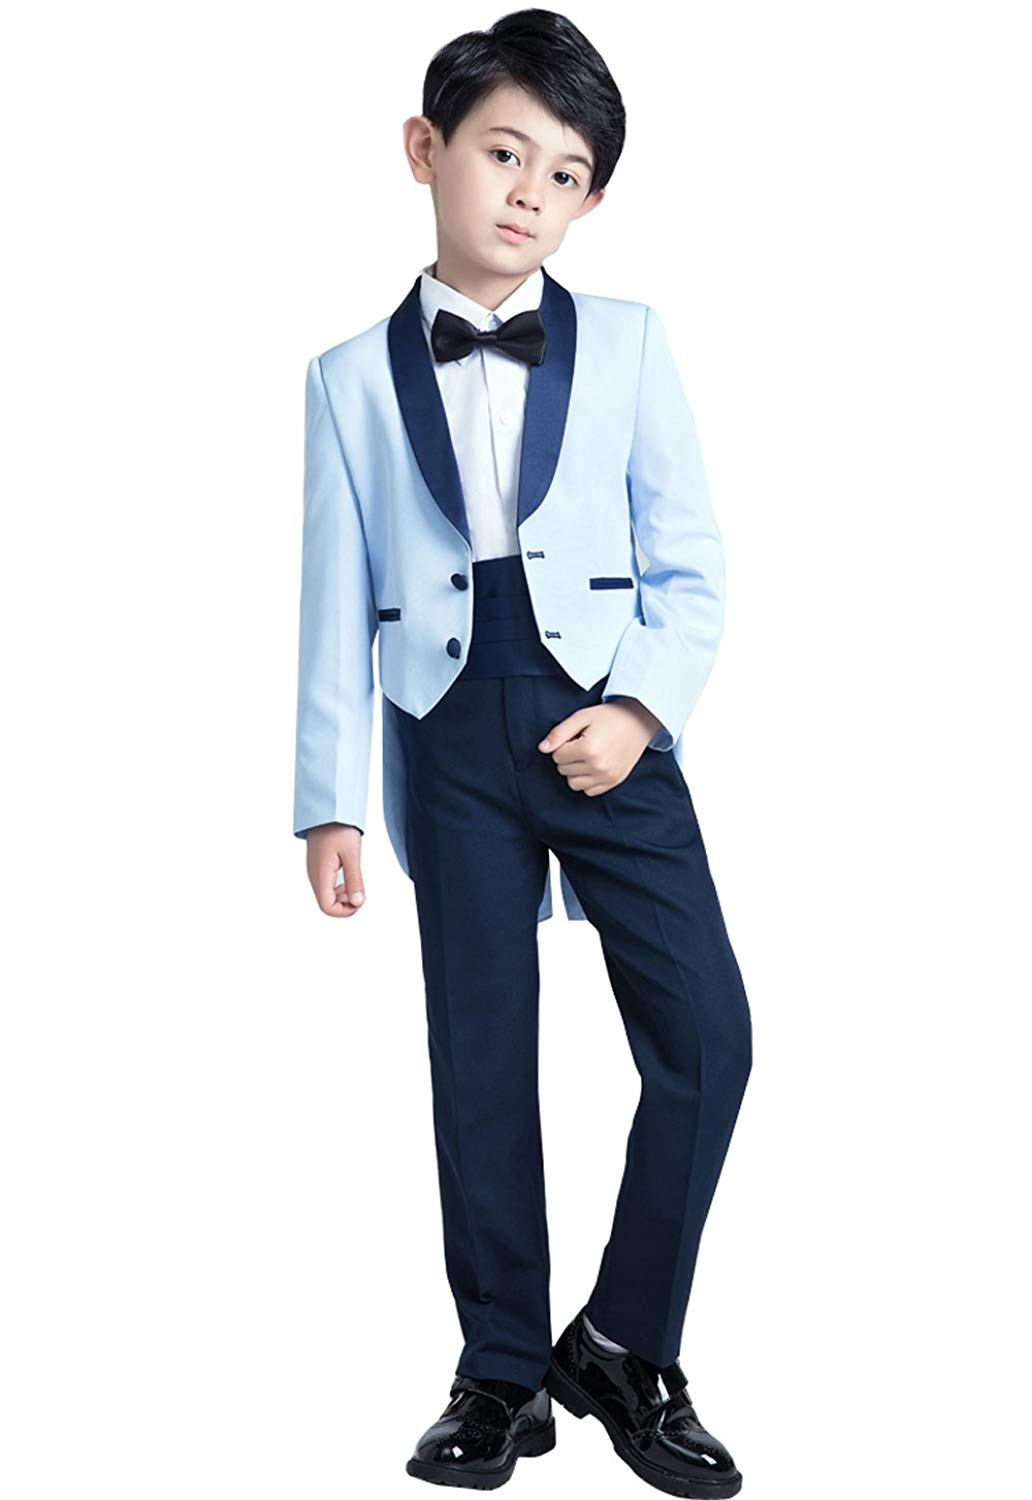 yeoyaw 2018 Boys New Design Formal Slim Fit Suits Set Jacket Short Pants 2T-14 Wedding Party Ceremony